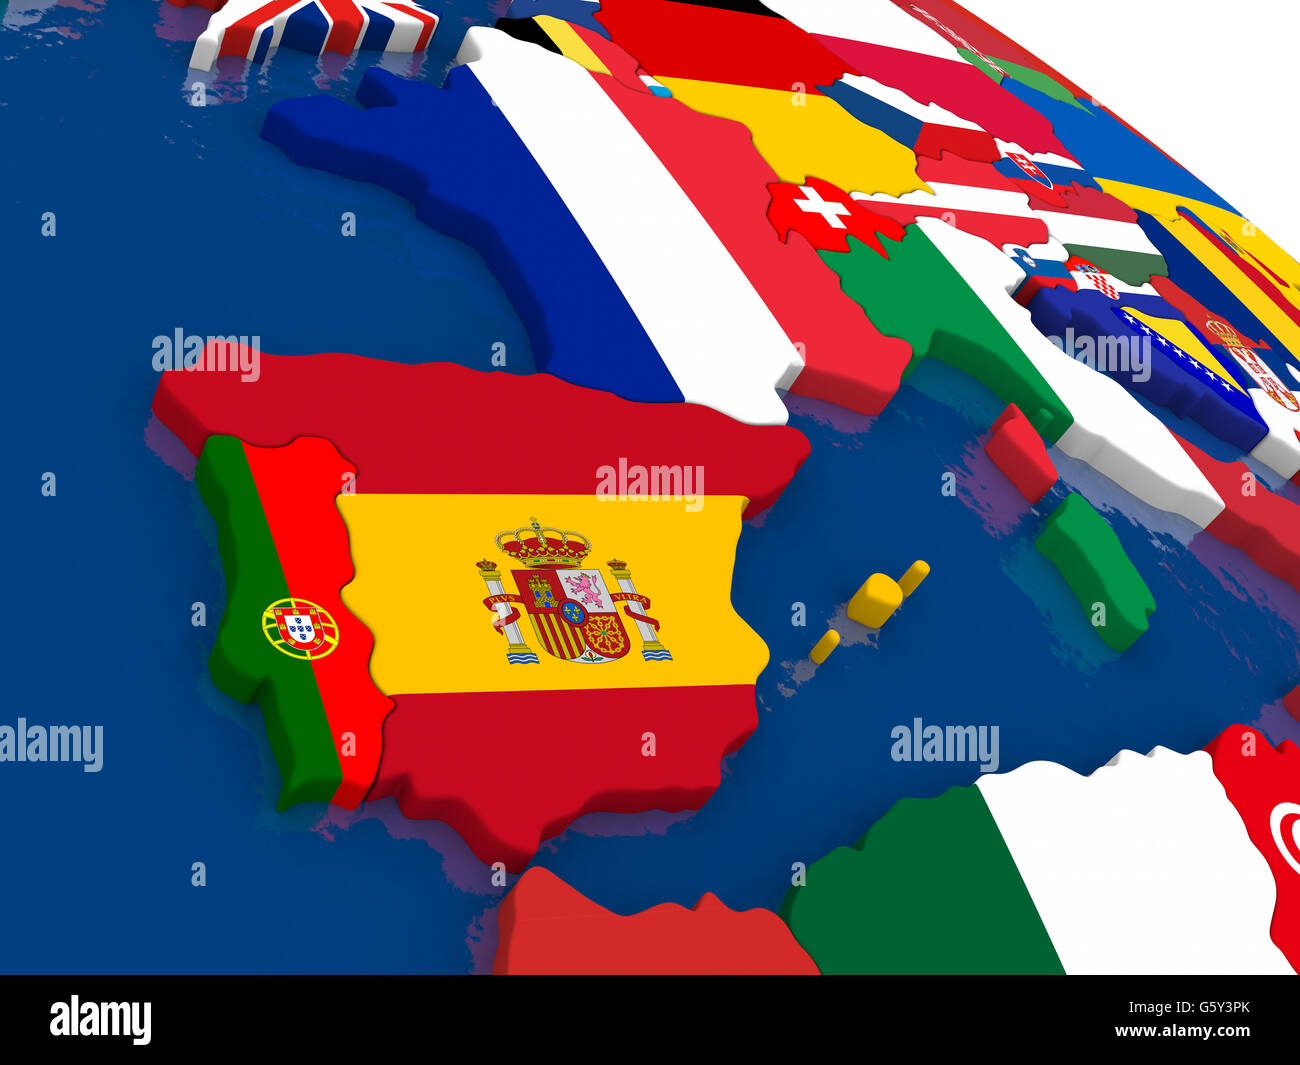 Map of Spain and Portugal with embedded flags on 3D political map ...